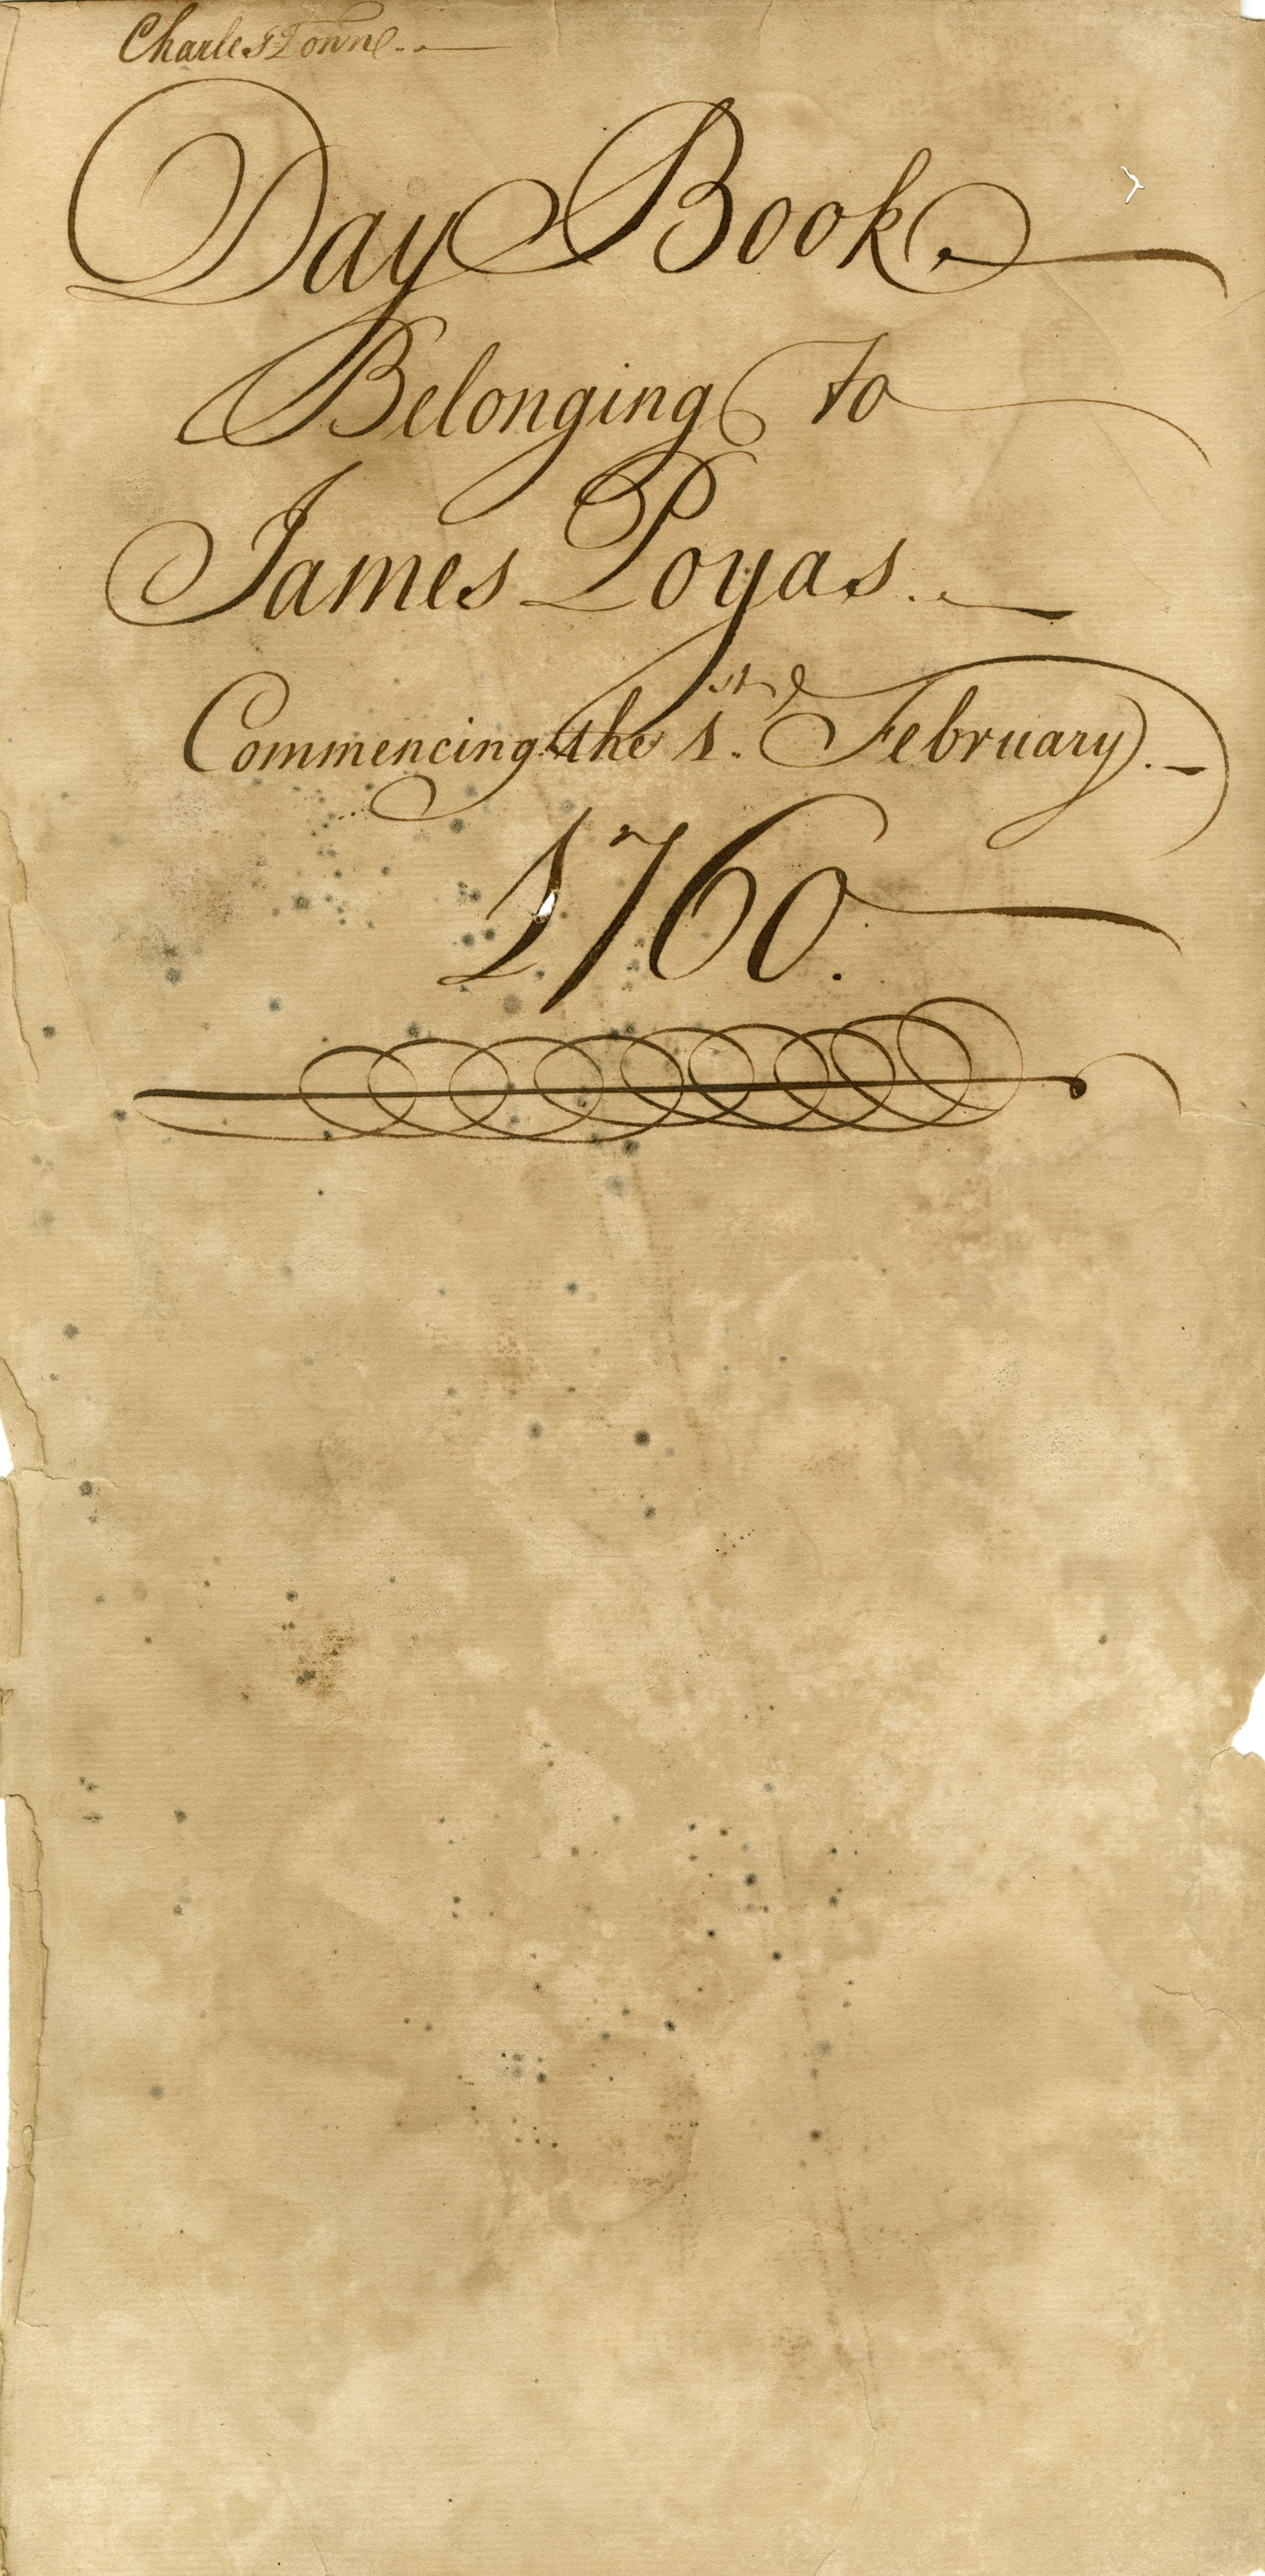 The James Poyas Daybook